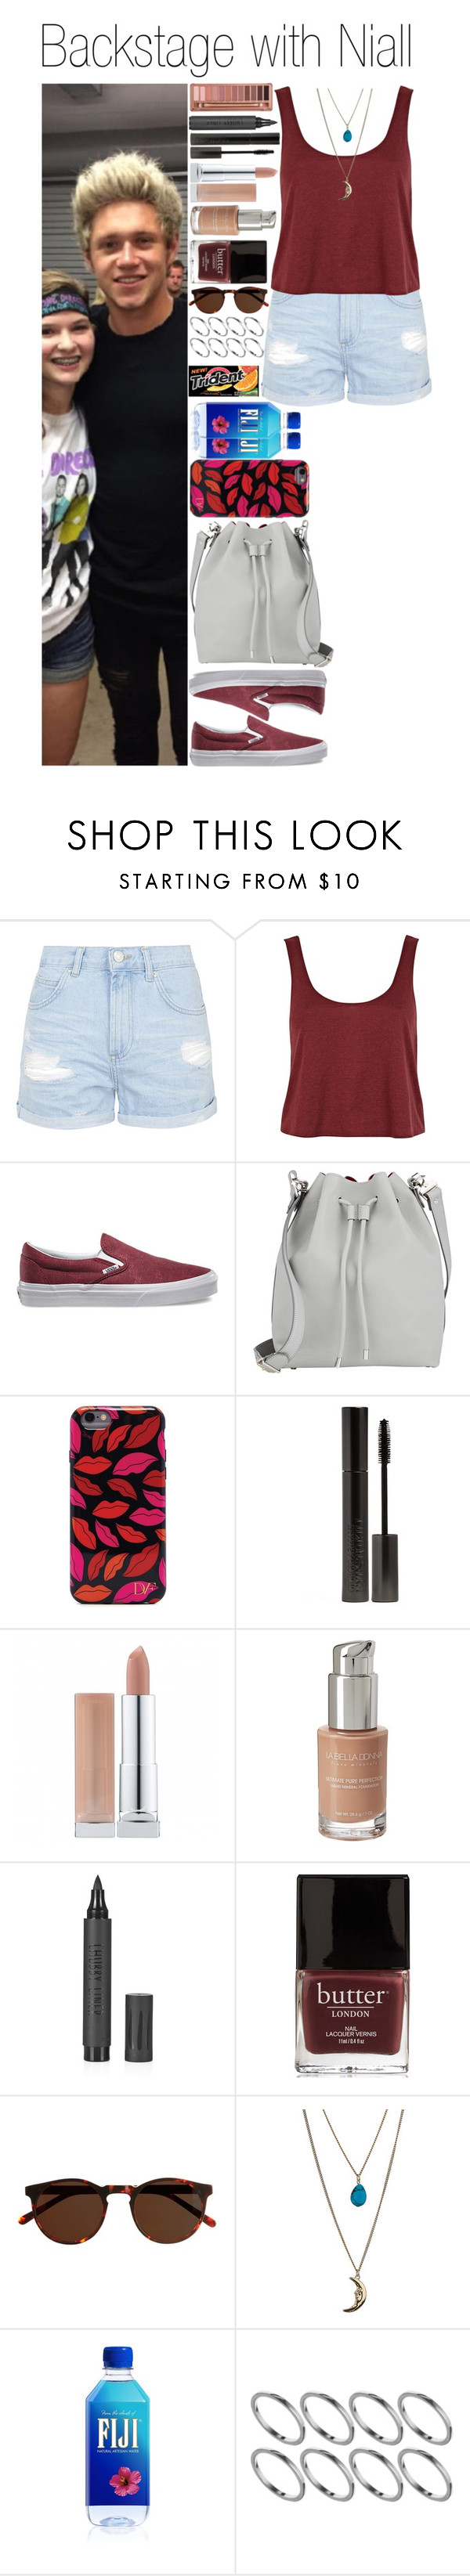 """#Backstage with Niall"" by didi-horan ❤ liked on Polyvore featuring Topshop, River Island, Vans, Proenza Schouler, Diane Von Furstenberg, Urban Decay, Giorgio Armani, La Bella Donna, J.Crew and Miss Selfridge"